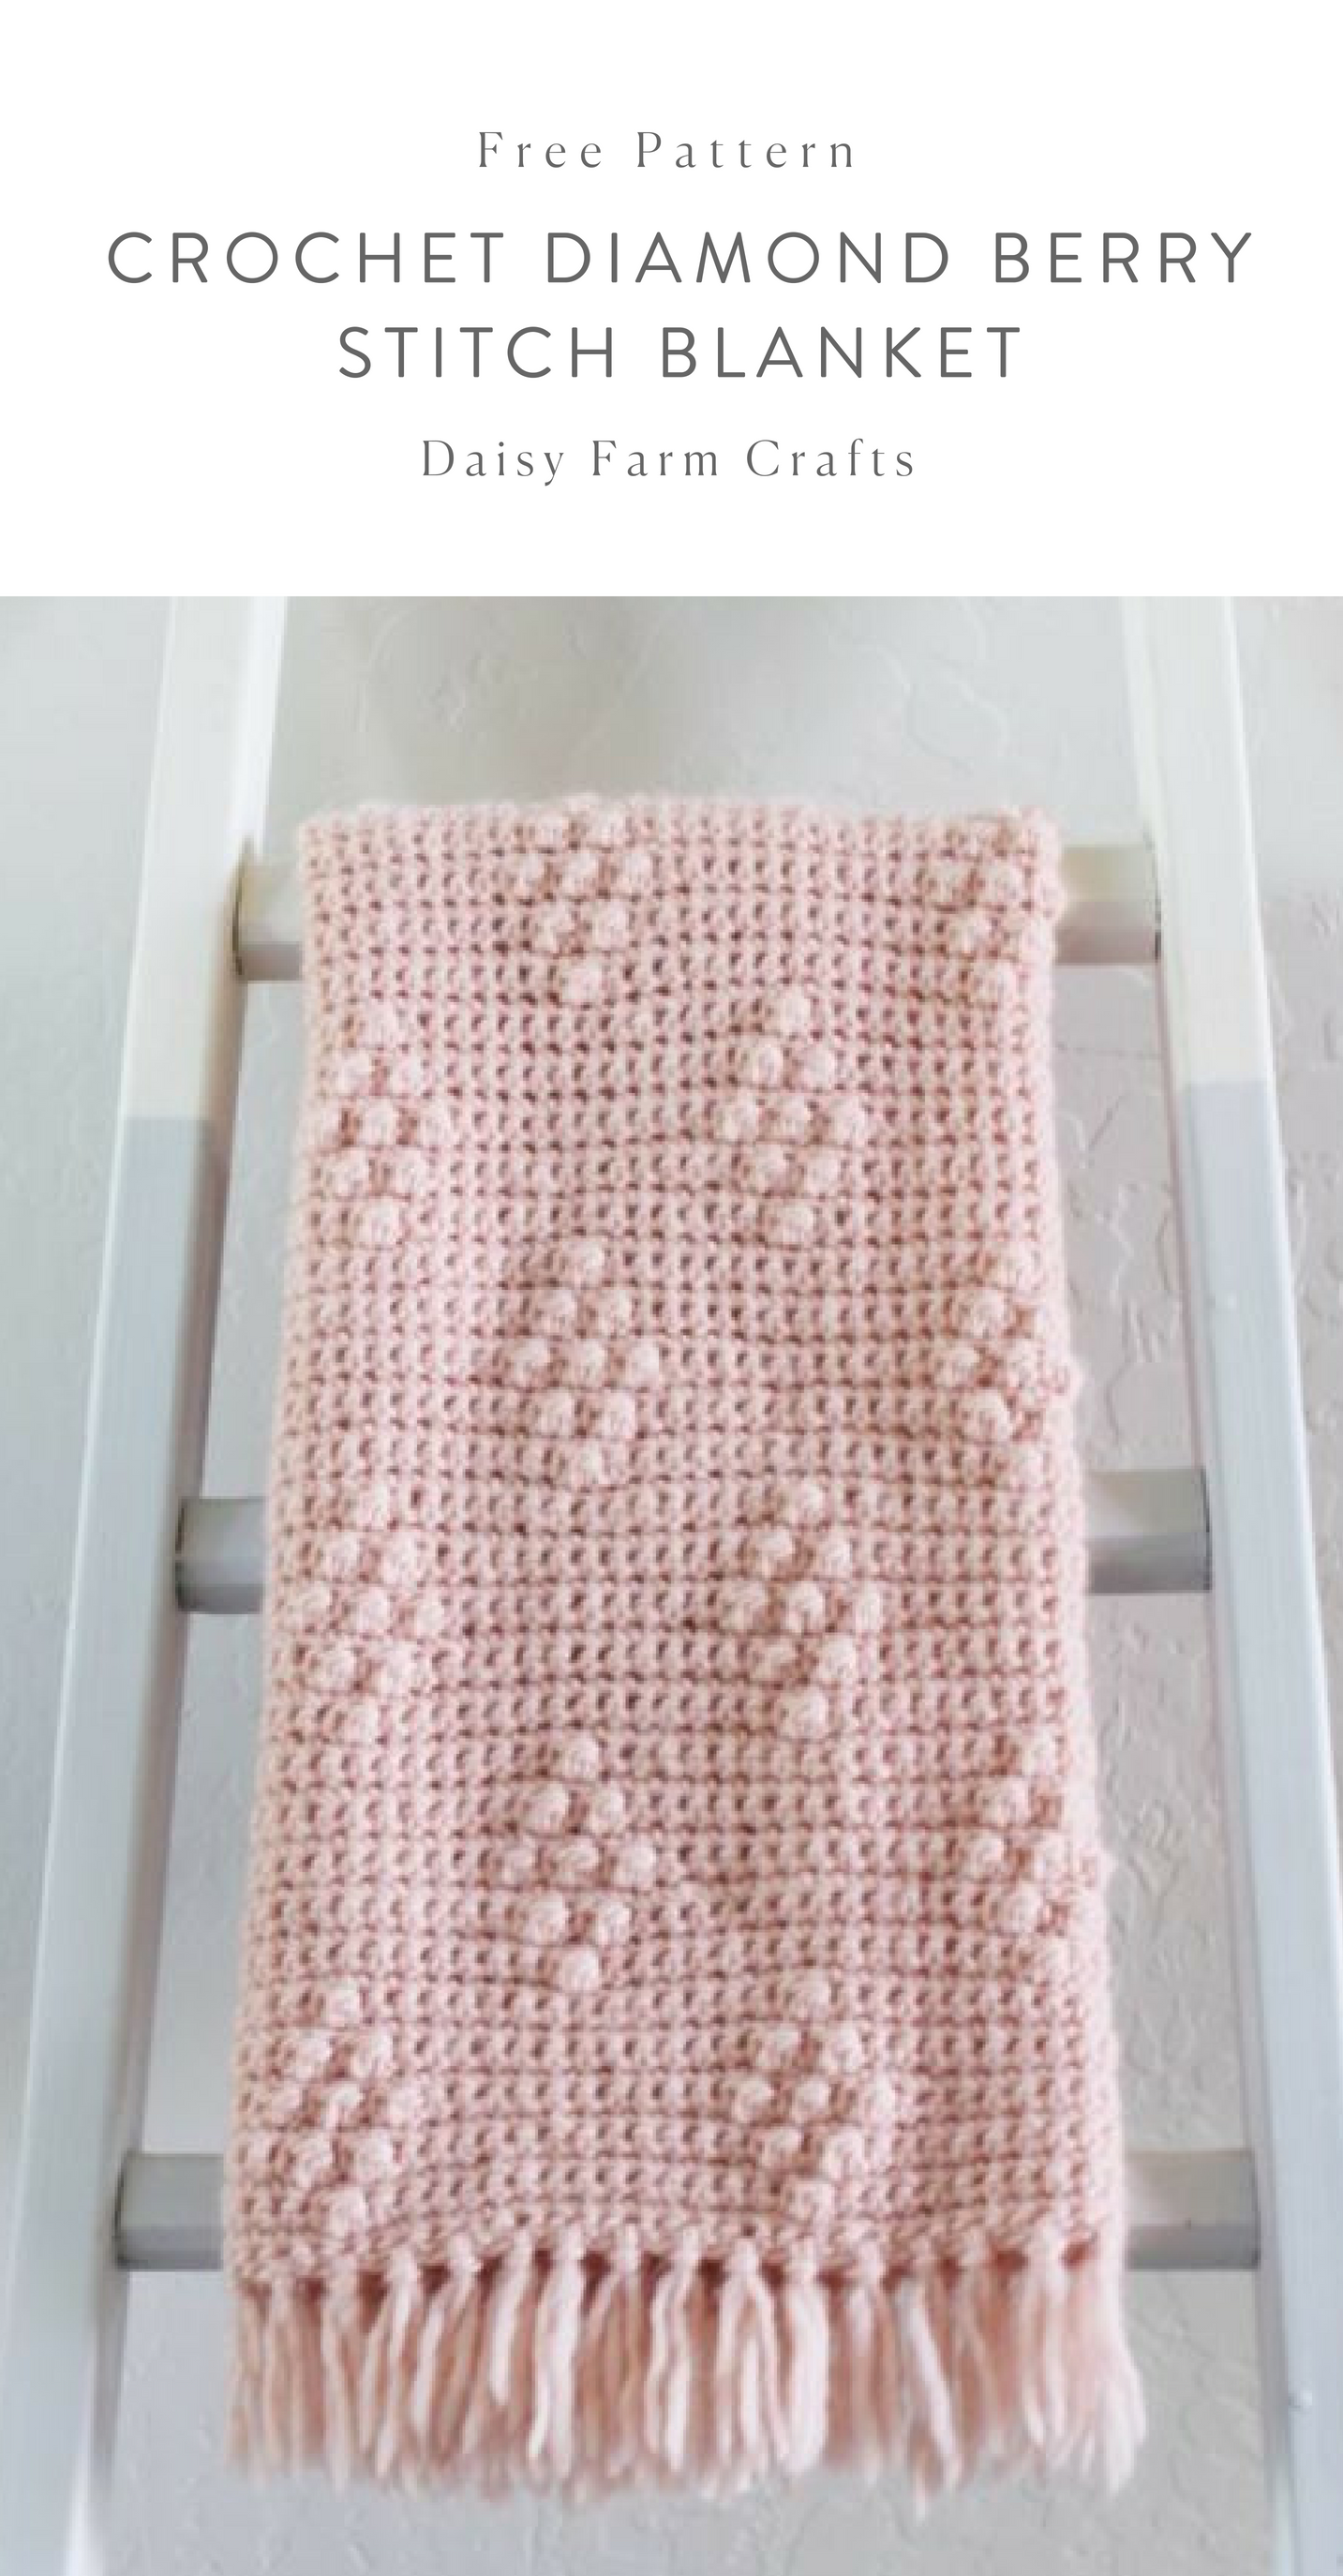 Free Pattern - Crochet Diamond Berry Stitch Blanket #crochet ...